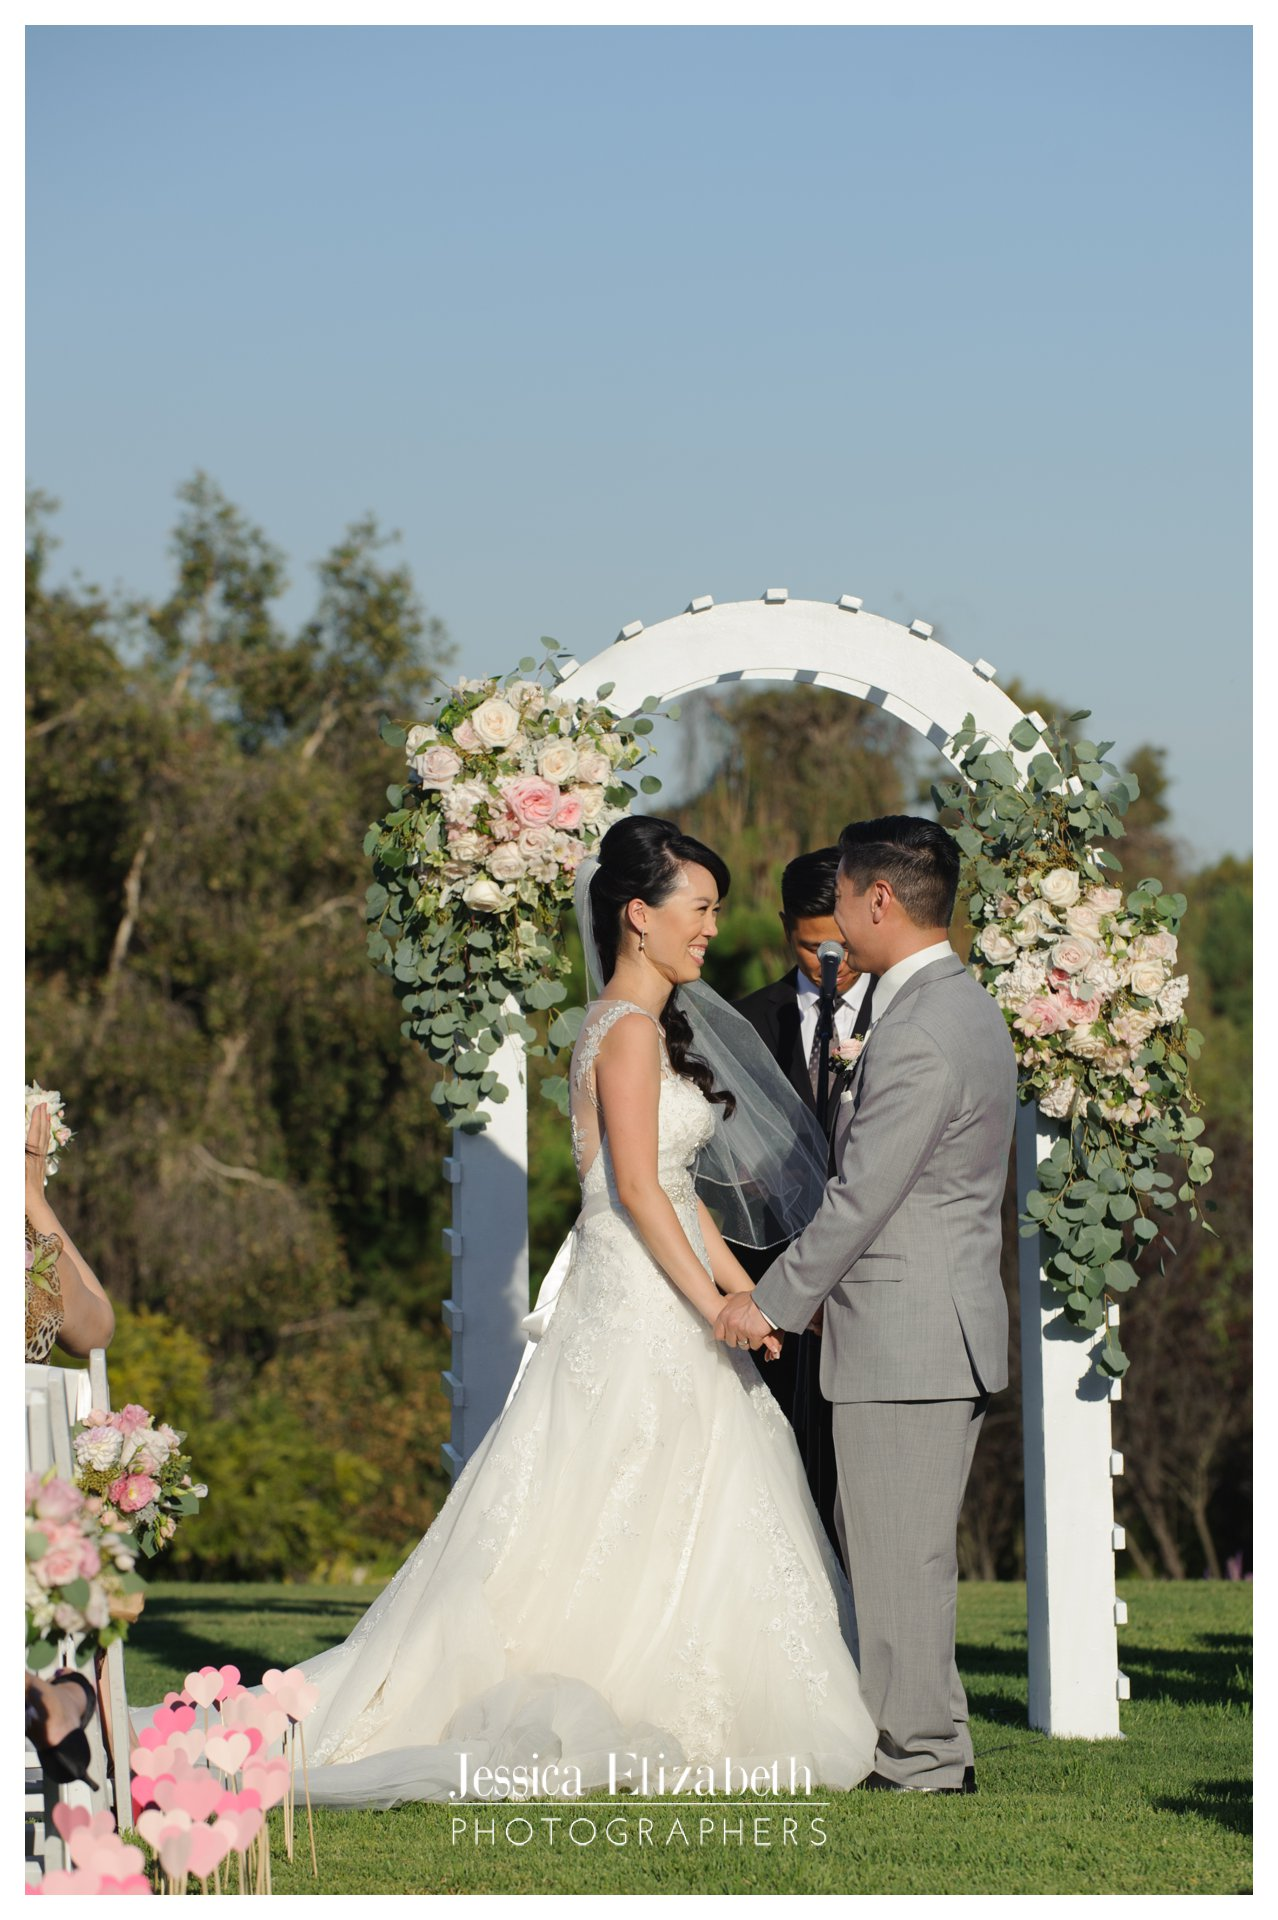 20-South-Coast-Botanic-Garden-Palos-Verdes-Wedding-Photography-by-Jessica-Elizabeth.jpg